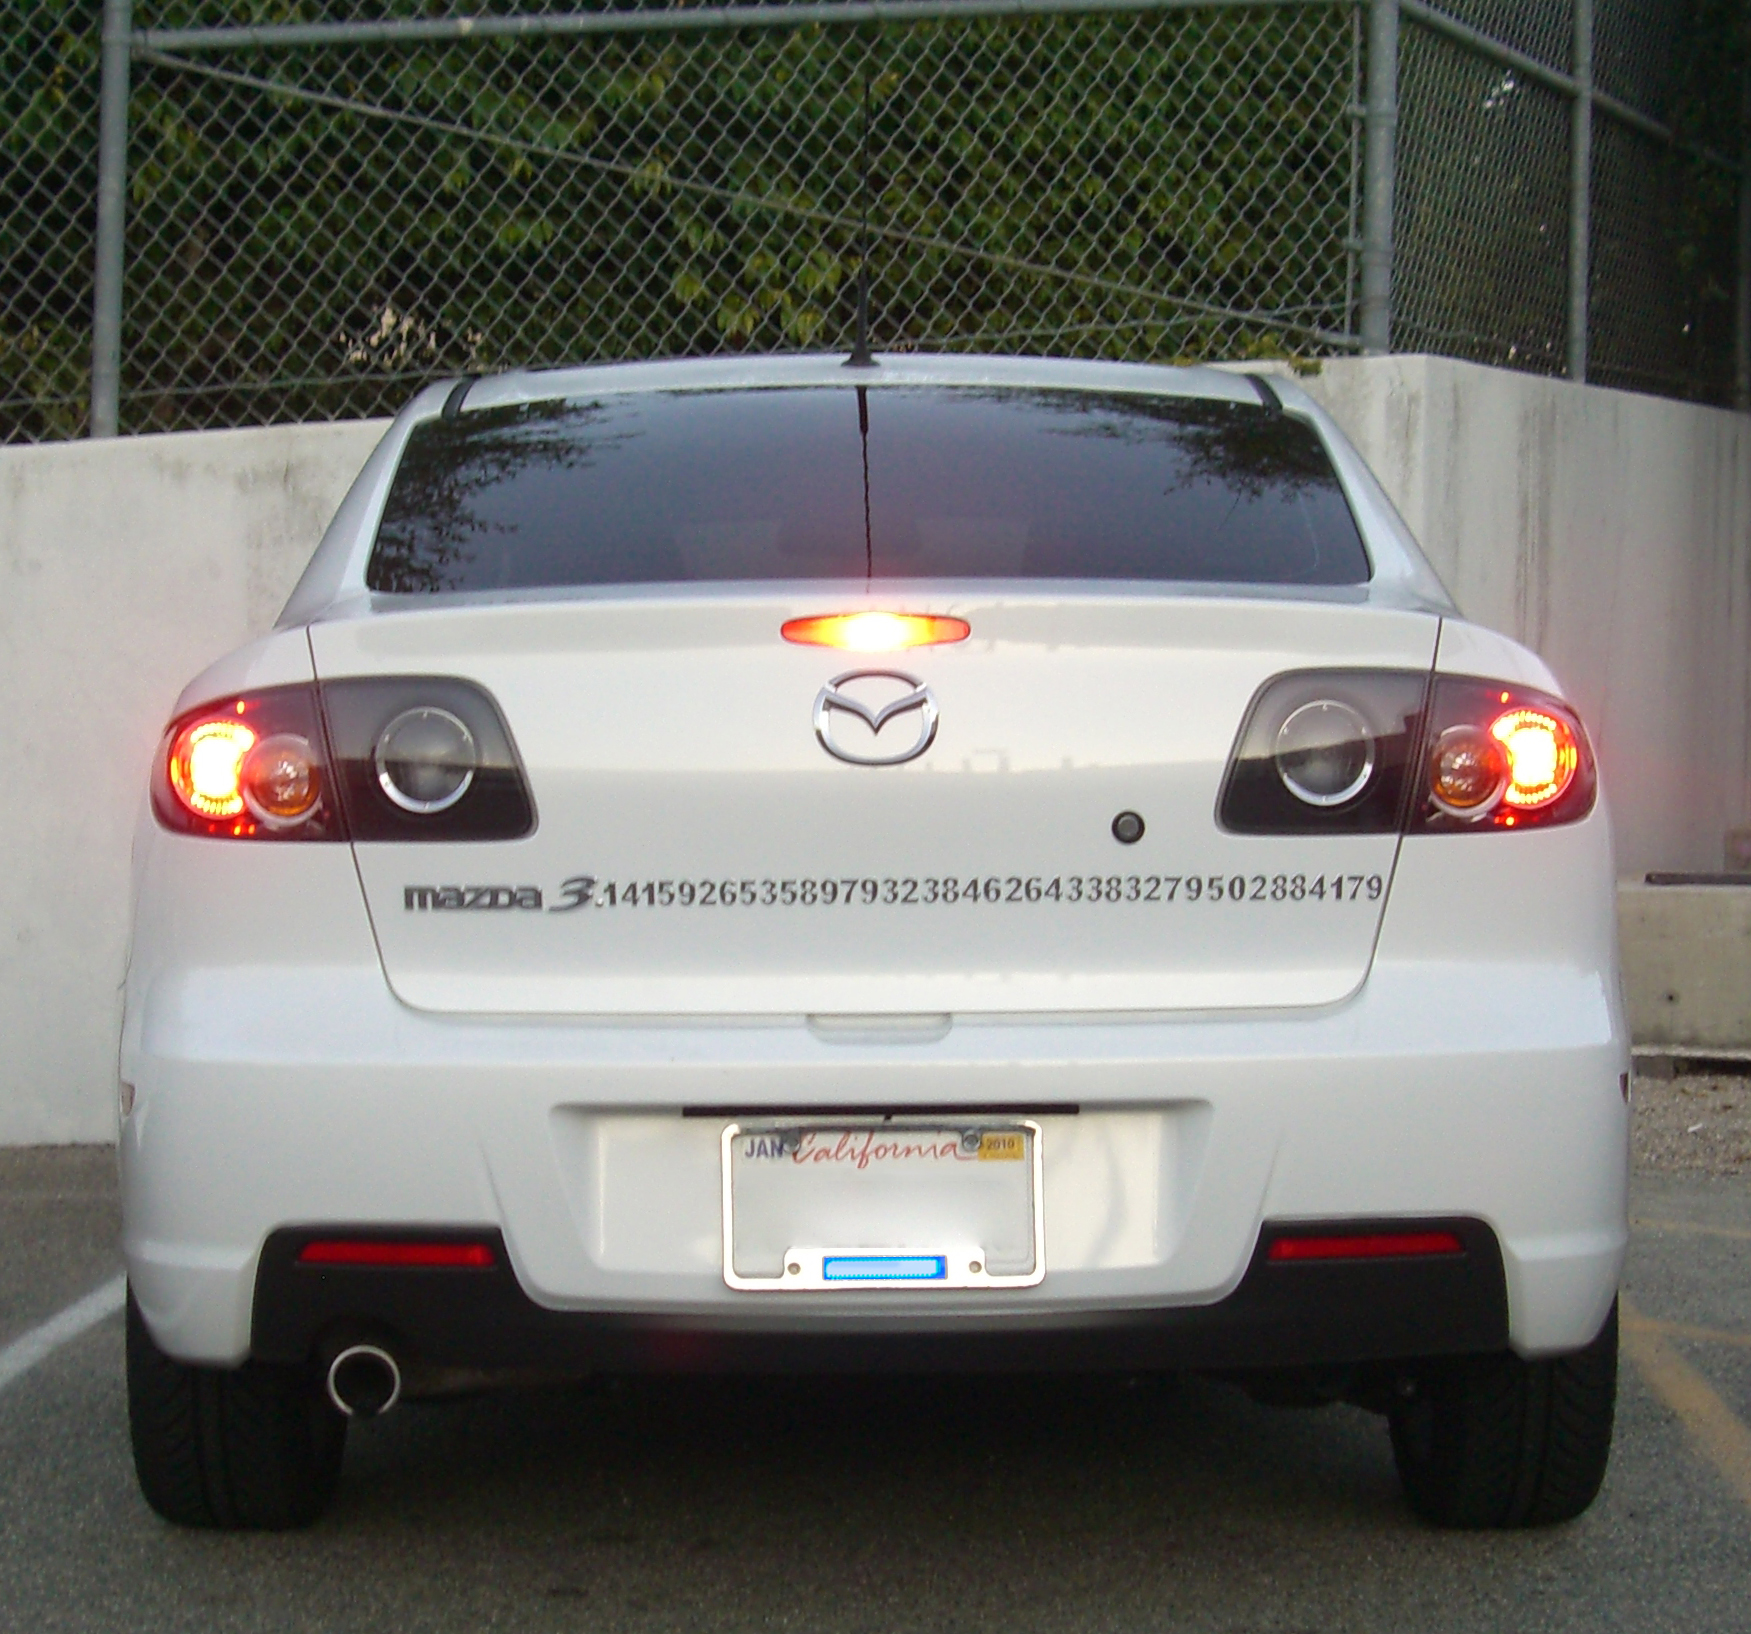 https://upload.wikimedia.org/wikipedia/commons/7/77/Mazda3-pi.jpg